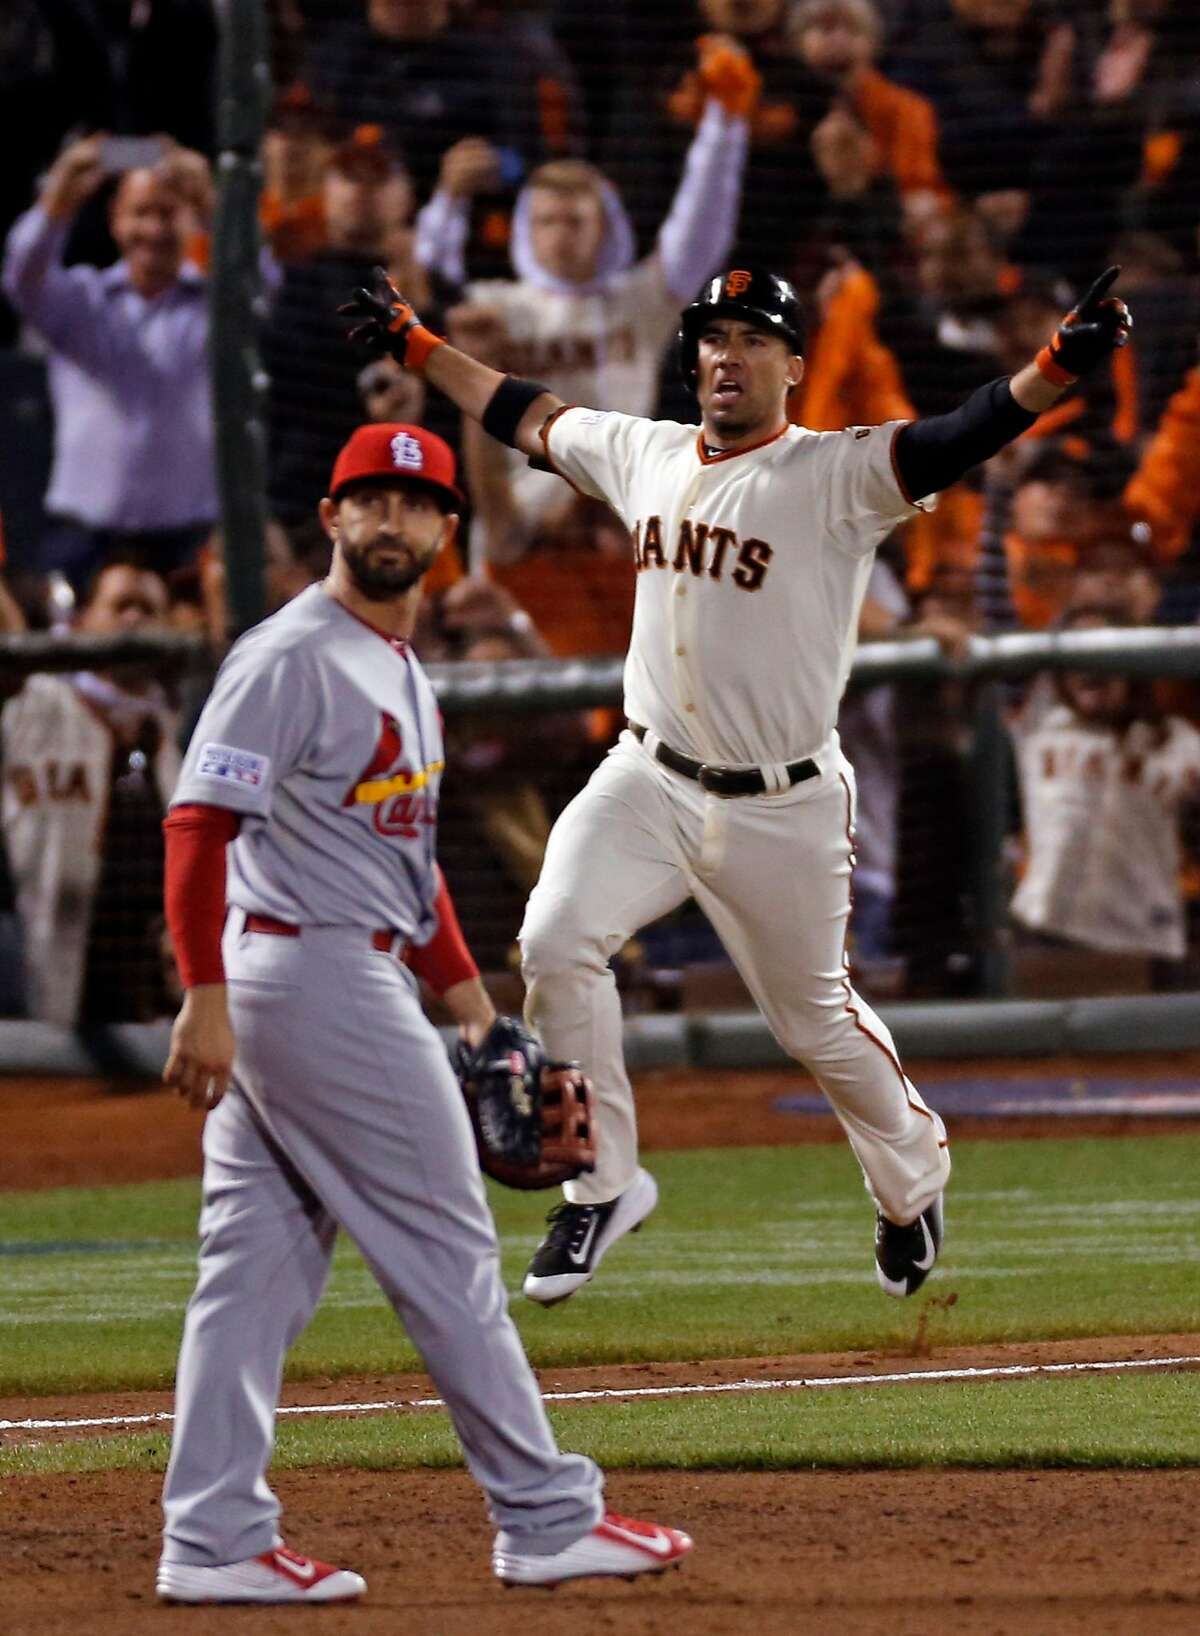 San Francisco Giants' Travis Ishikawa hits a game-winning 3-run home run in 9th inning of 6-3 win over St. Louis Cardinals in Game 5 of the NLCS at AT&T Park in San Francisco, Calif. on Thursday, October 16, 2014.